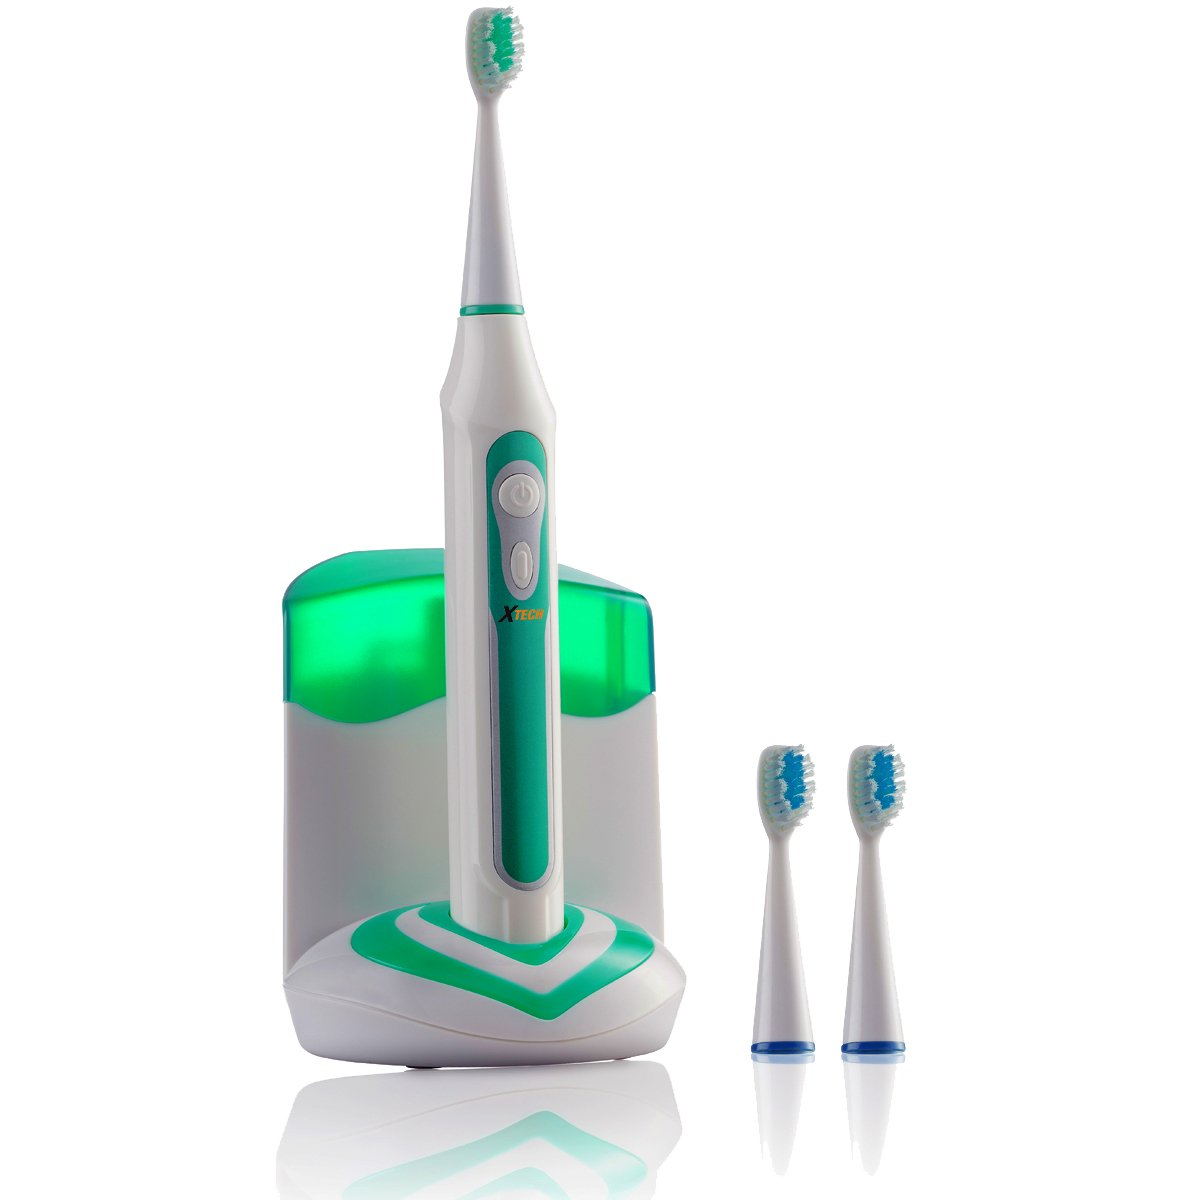 Xtech XHST-100 Oral Hygiene Ultra High Powered 40,000VPM, 5 Brushing Modes, Rechargeable Electric Ultrasonic Toothbrush with Charging Dock & Built-in UV Sanitizer, Includes 3 Brush Heads Huihaozi